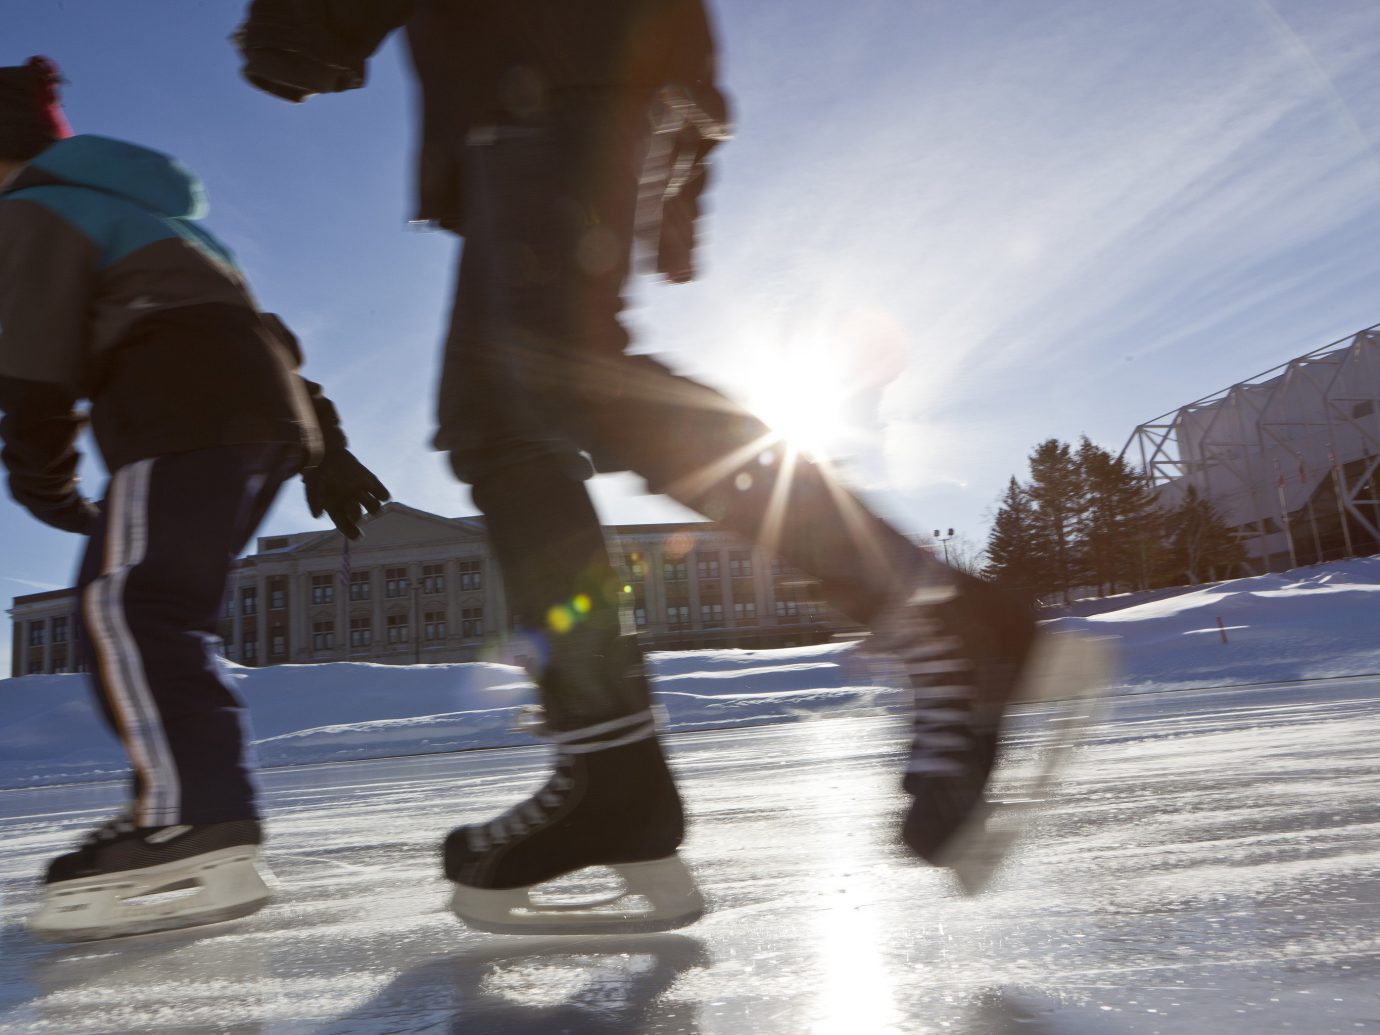 Trip Ideas person outdoor snow footwear snowboarding Winter weather winter sport Nature Ice Skating season skating sports slope outdoor recreation recreation extreme sport hill sports equipment